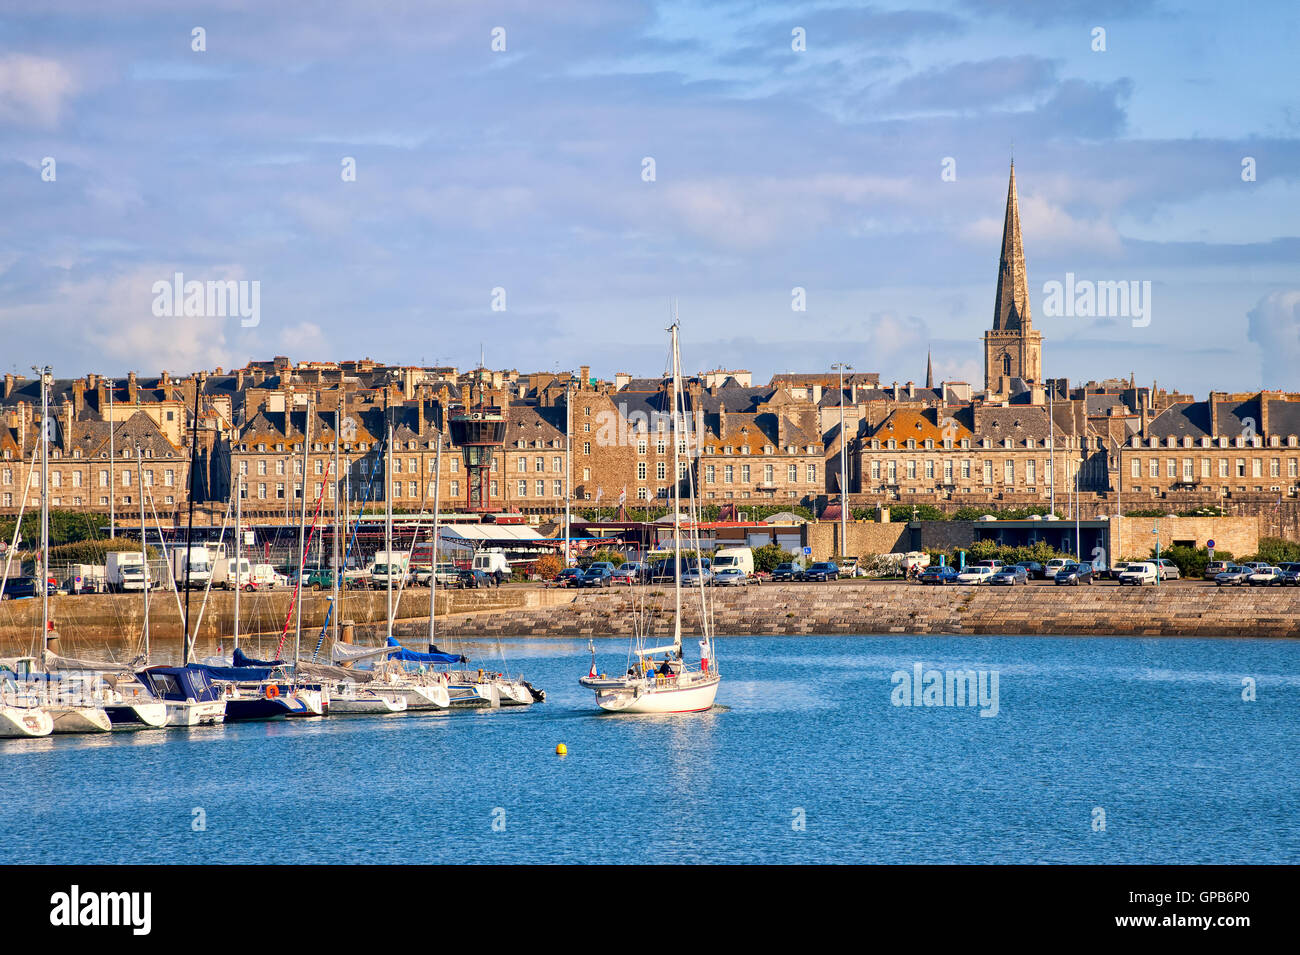 Yacht harbour and walled city of Saint-Malo, Brittany, France - Stock Image